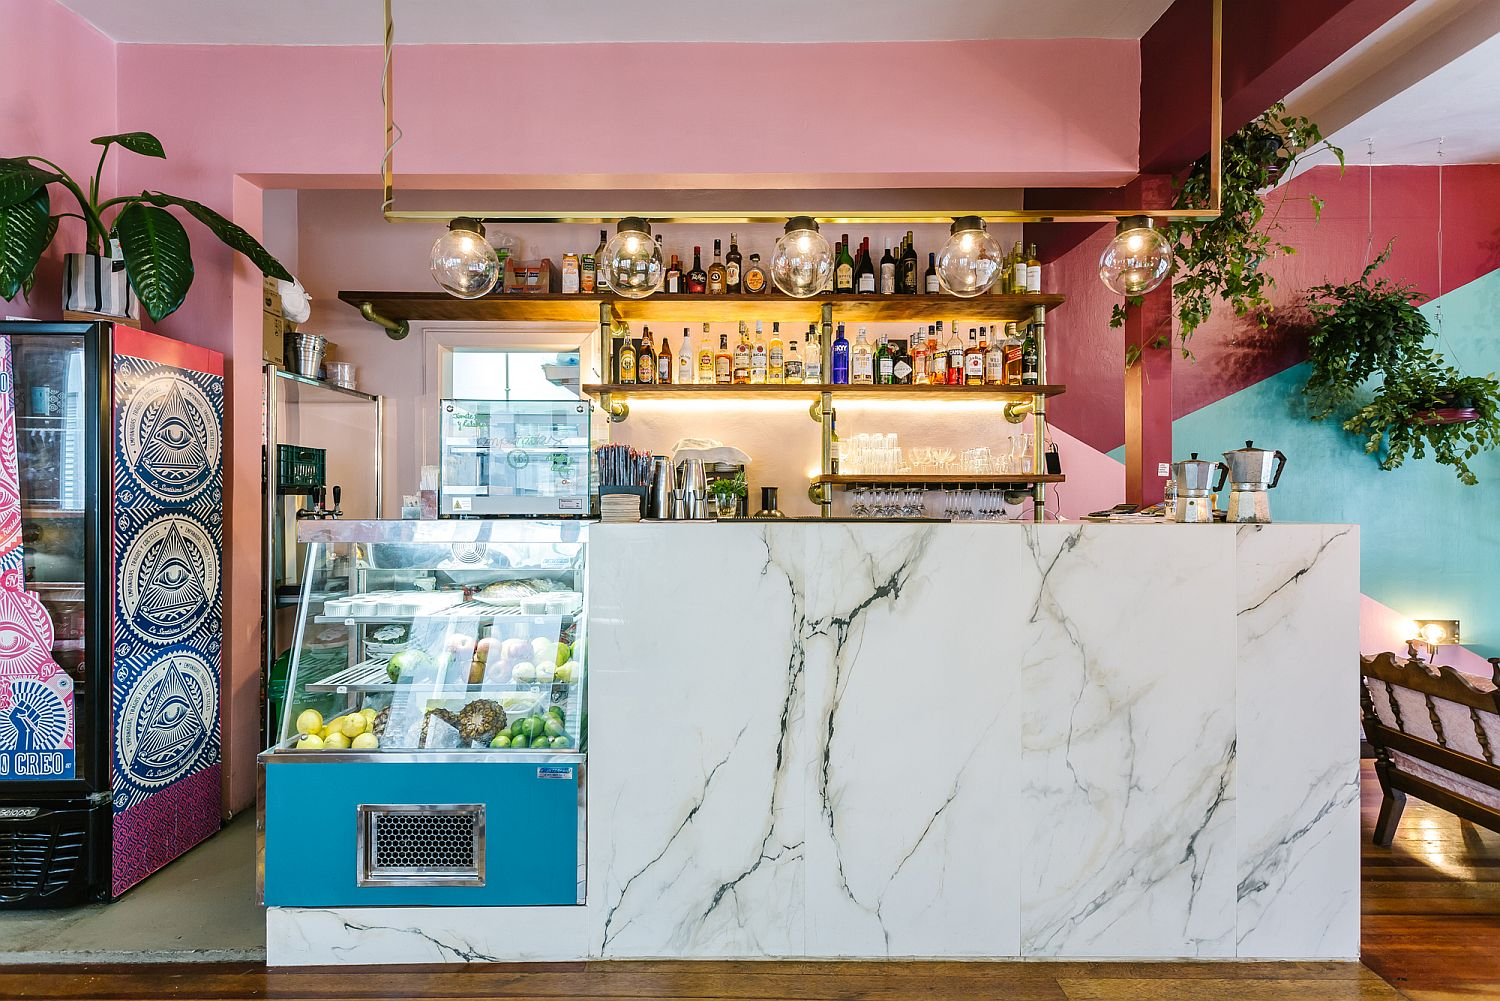 Marble and pink create a lovely and vivacious cafe interior